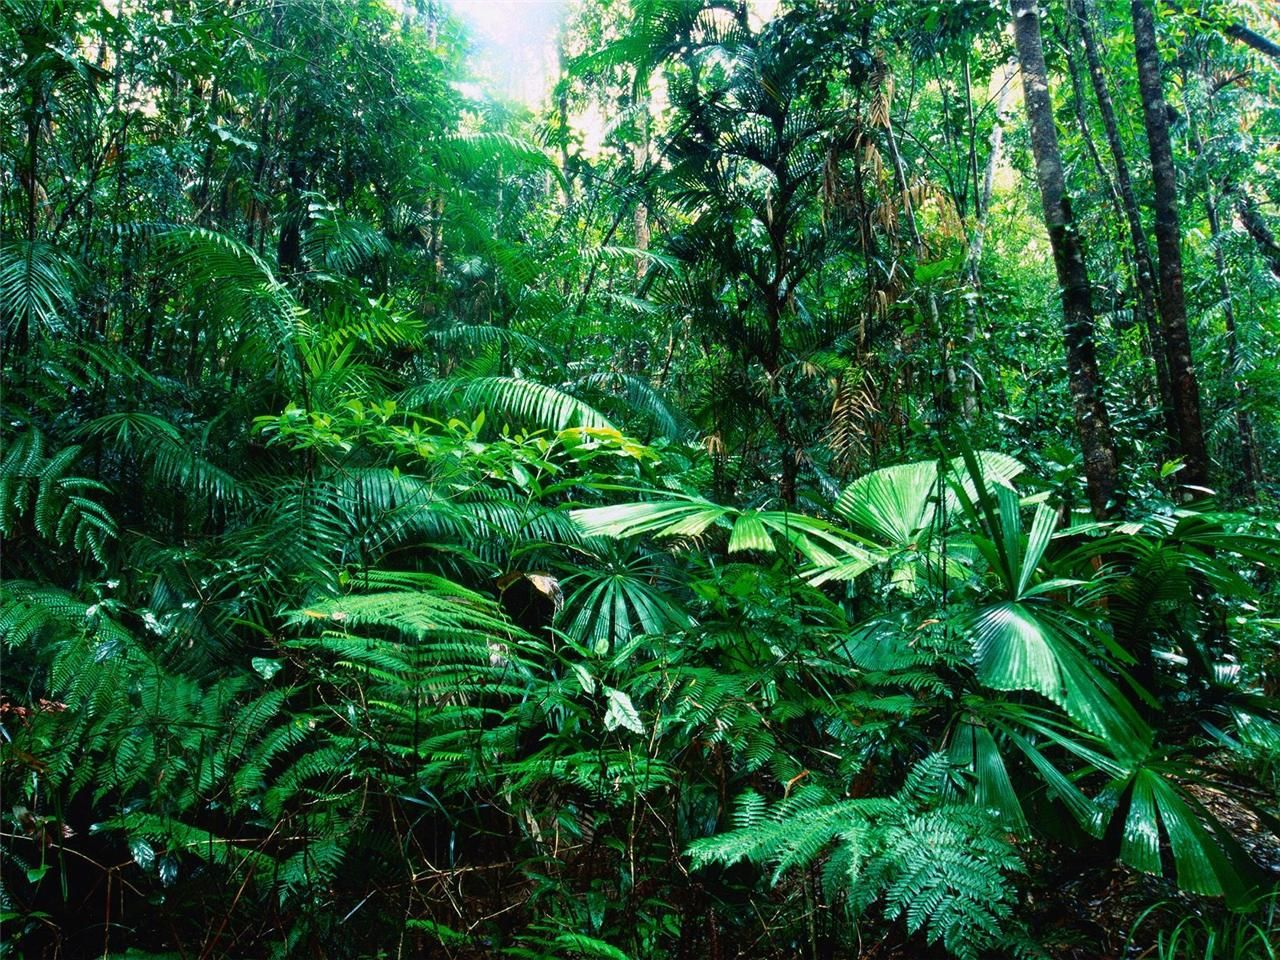 Details About Amazon Rainforest Glossy Poster Picture Photo Rain